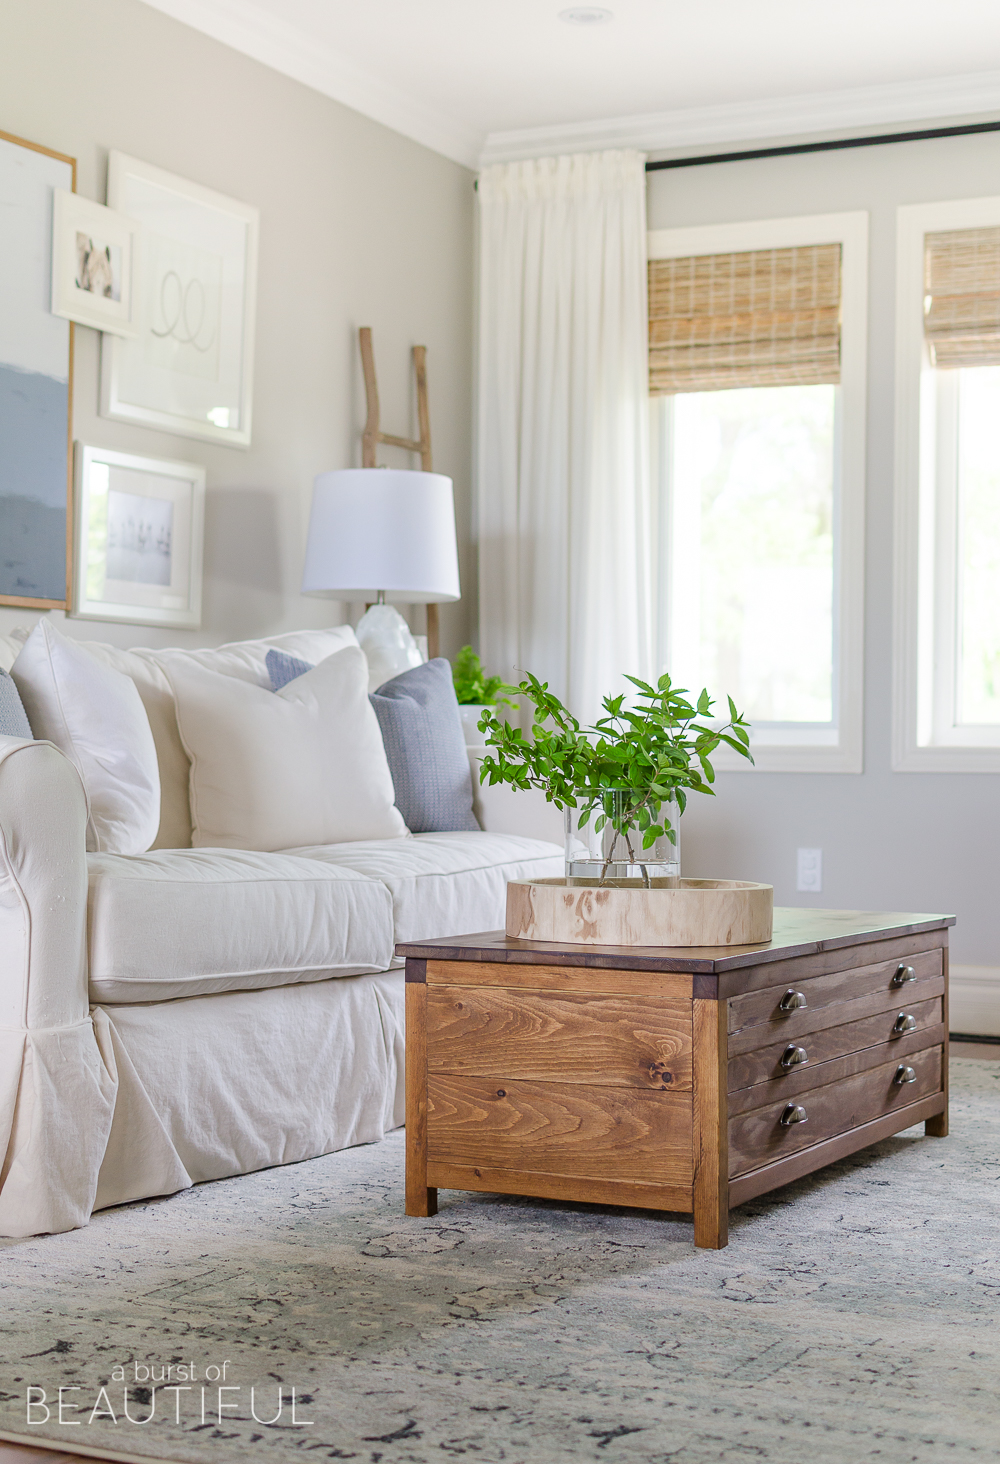 Build this beautiful Restoration Hardware inspired printmaker's coffee table for a fraction of the cost. Download the free plans here.